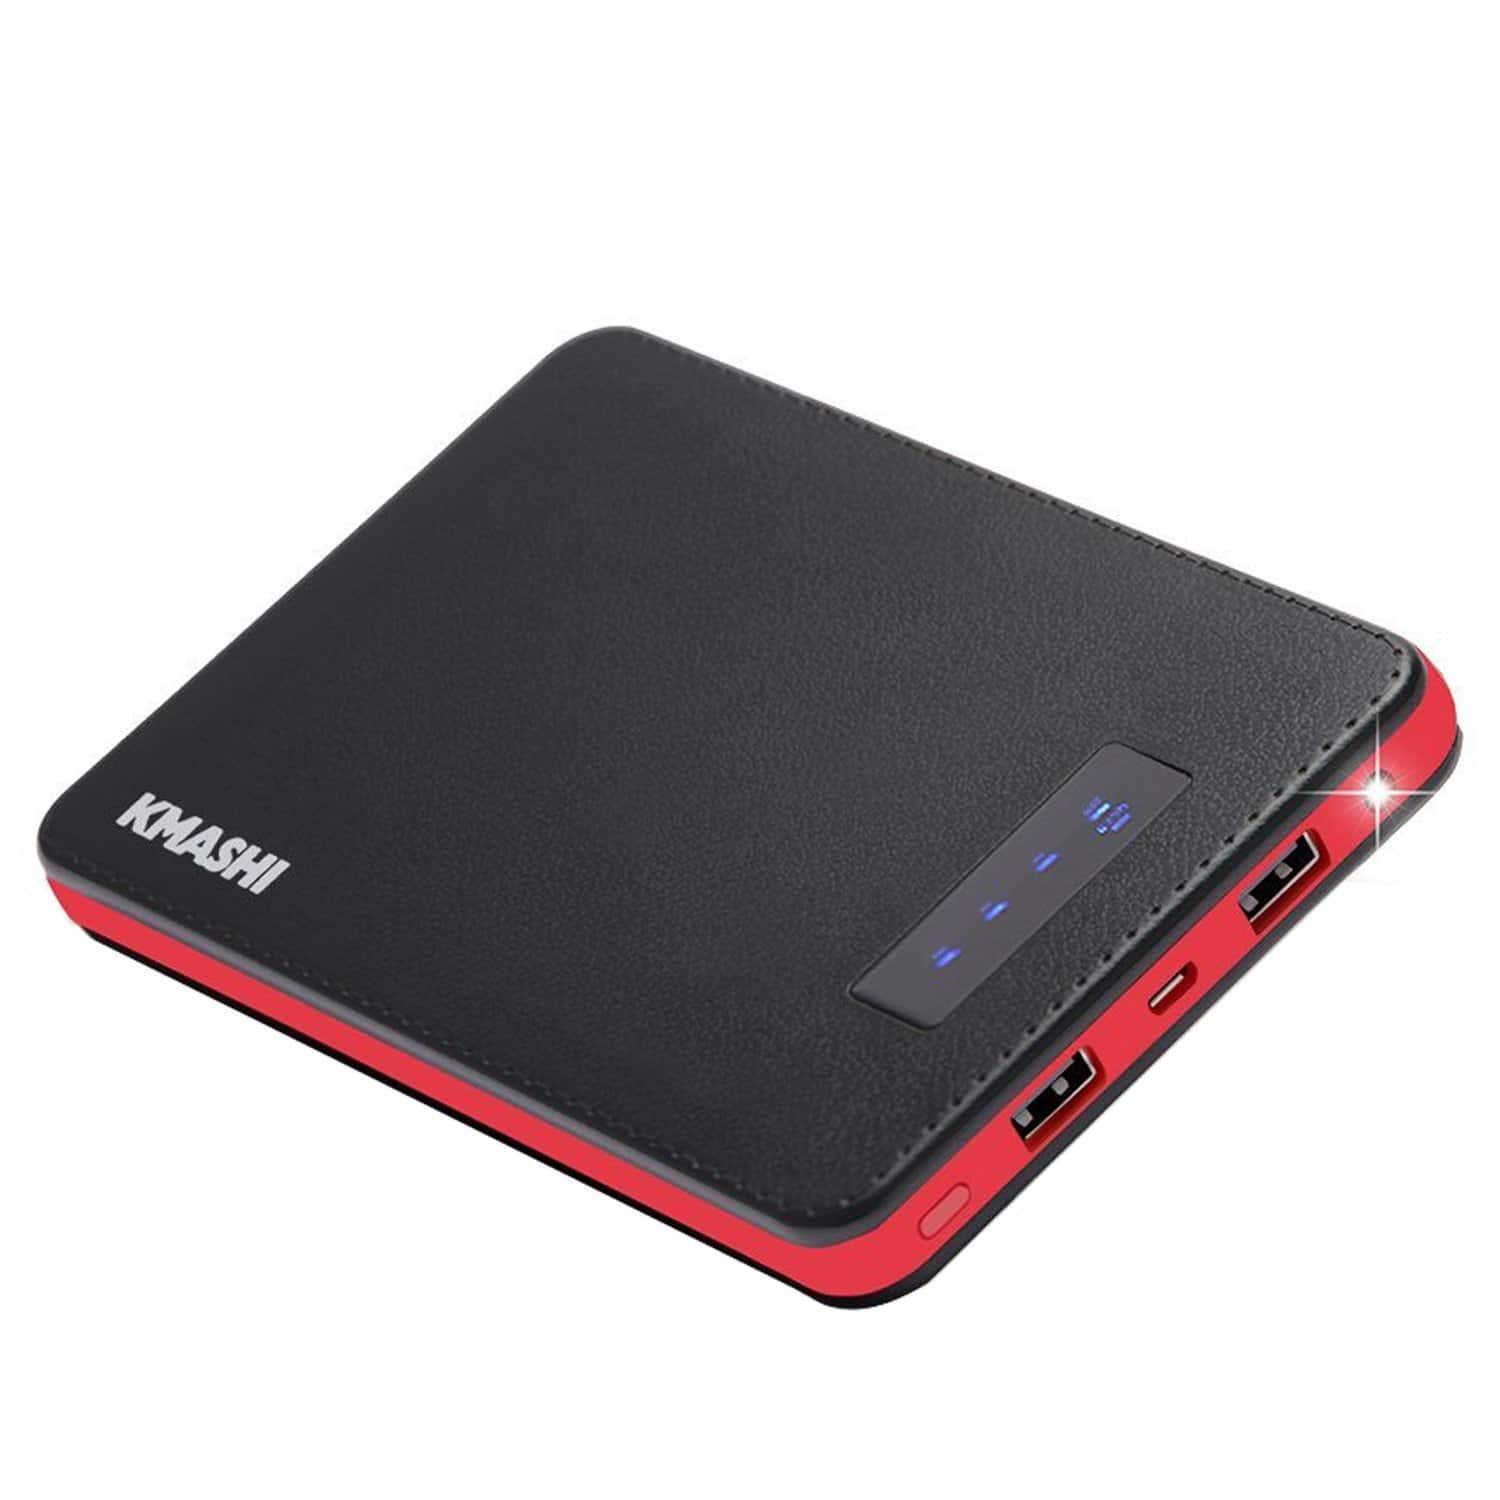 20,000mAh urlhasbeenblocked Dual USB QC 2.0 External Battery Pack  $20